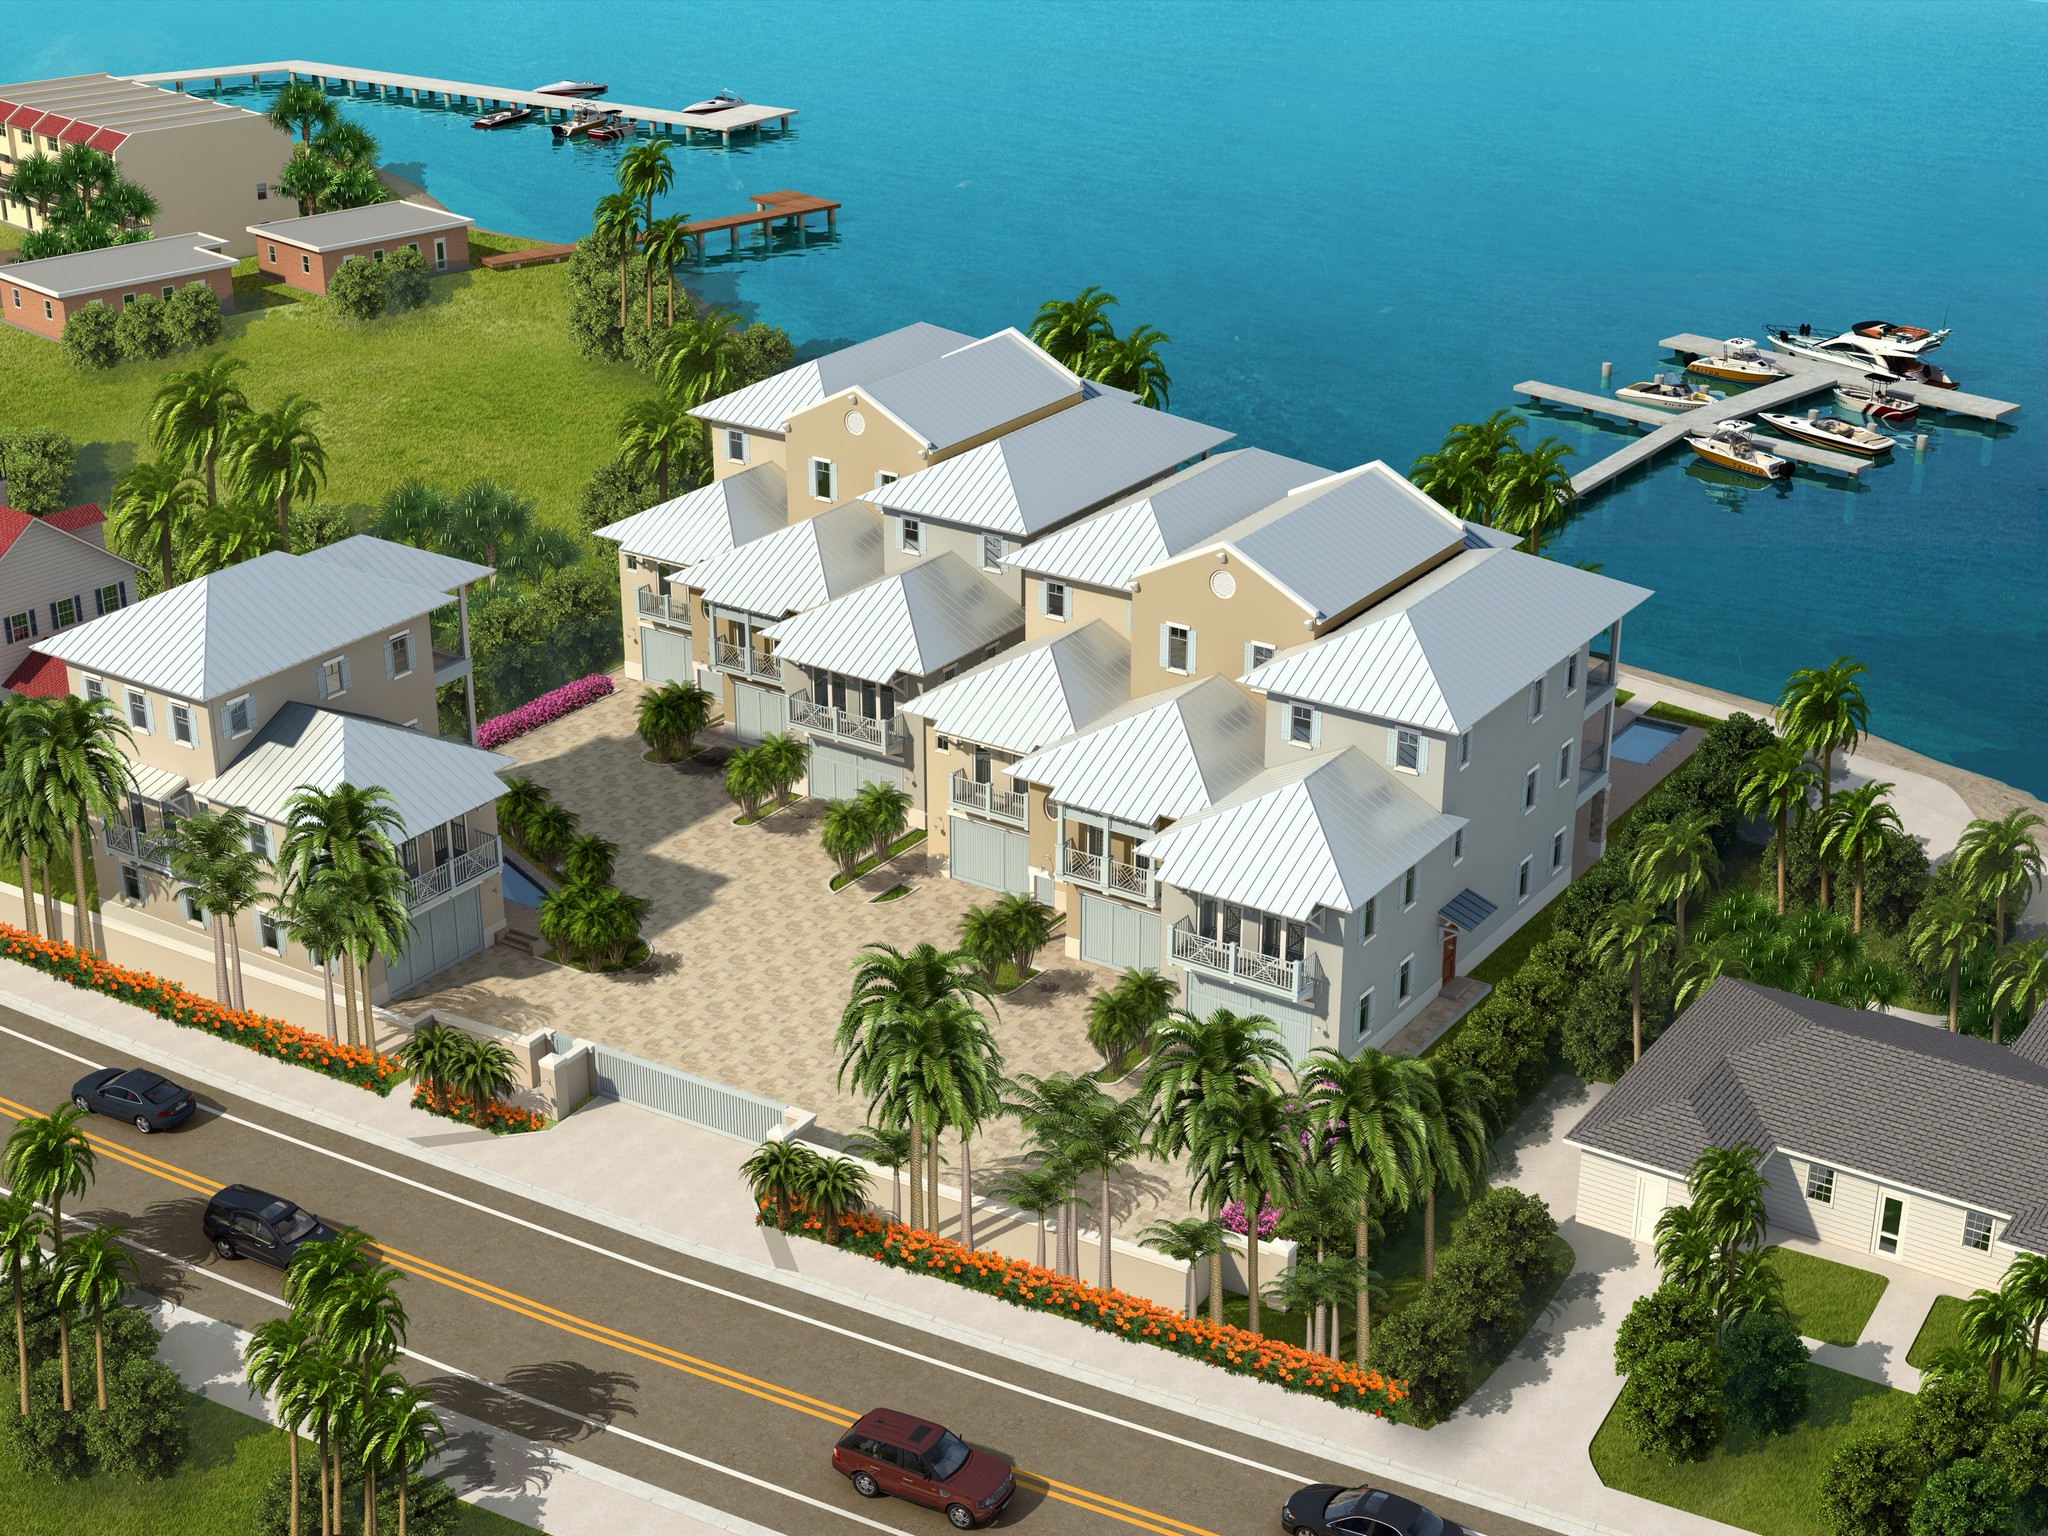 Moradia em banda para Venda às Riverfront Ultra-luxury townhome 1502 Seaway Drive #6 Fort Pierce, Florida 34949 Estados Unidos